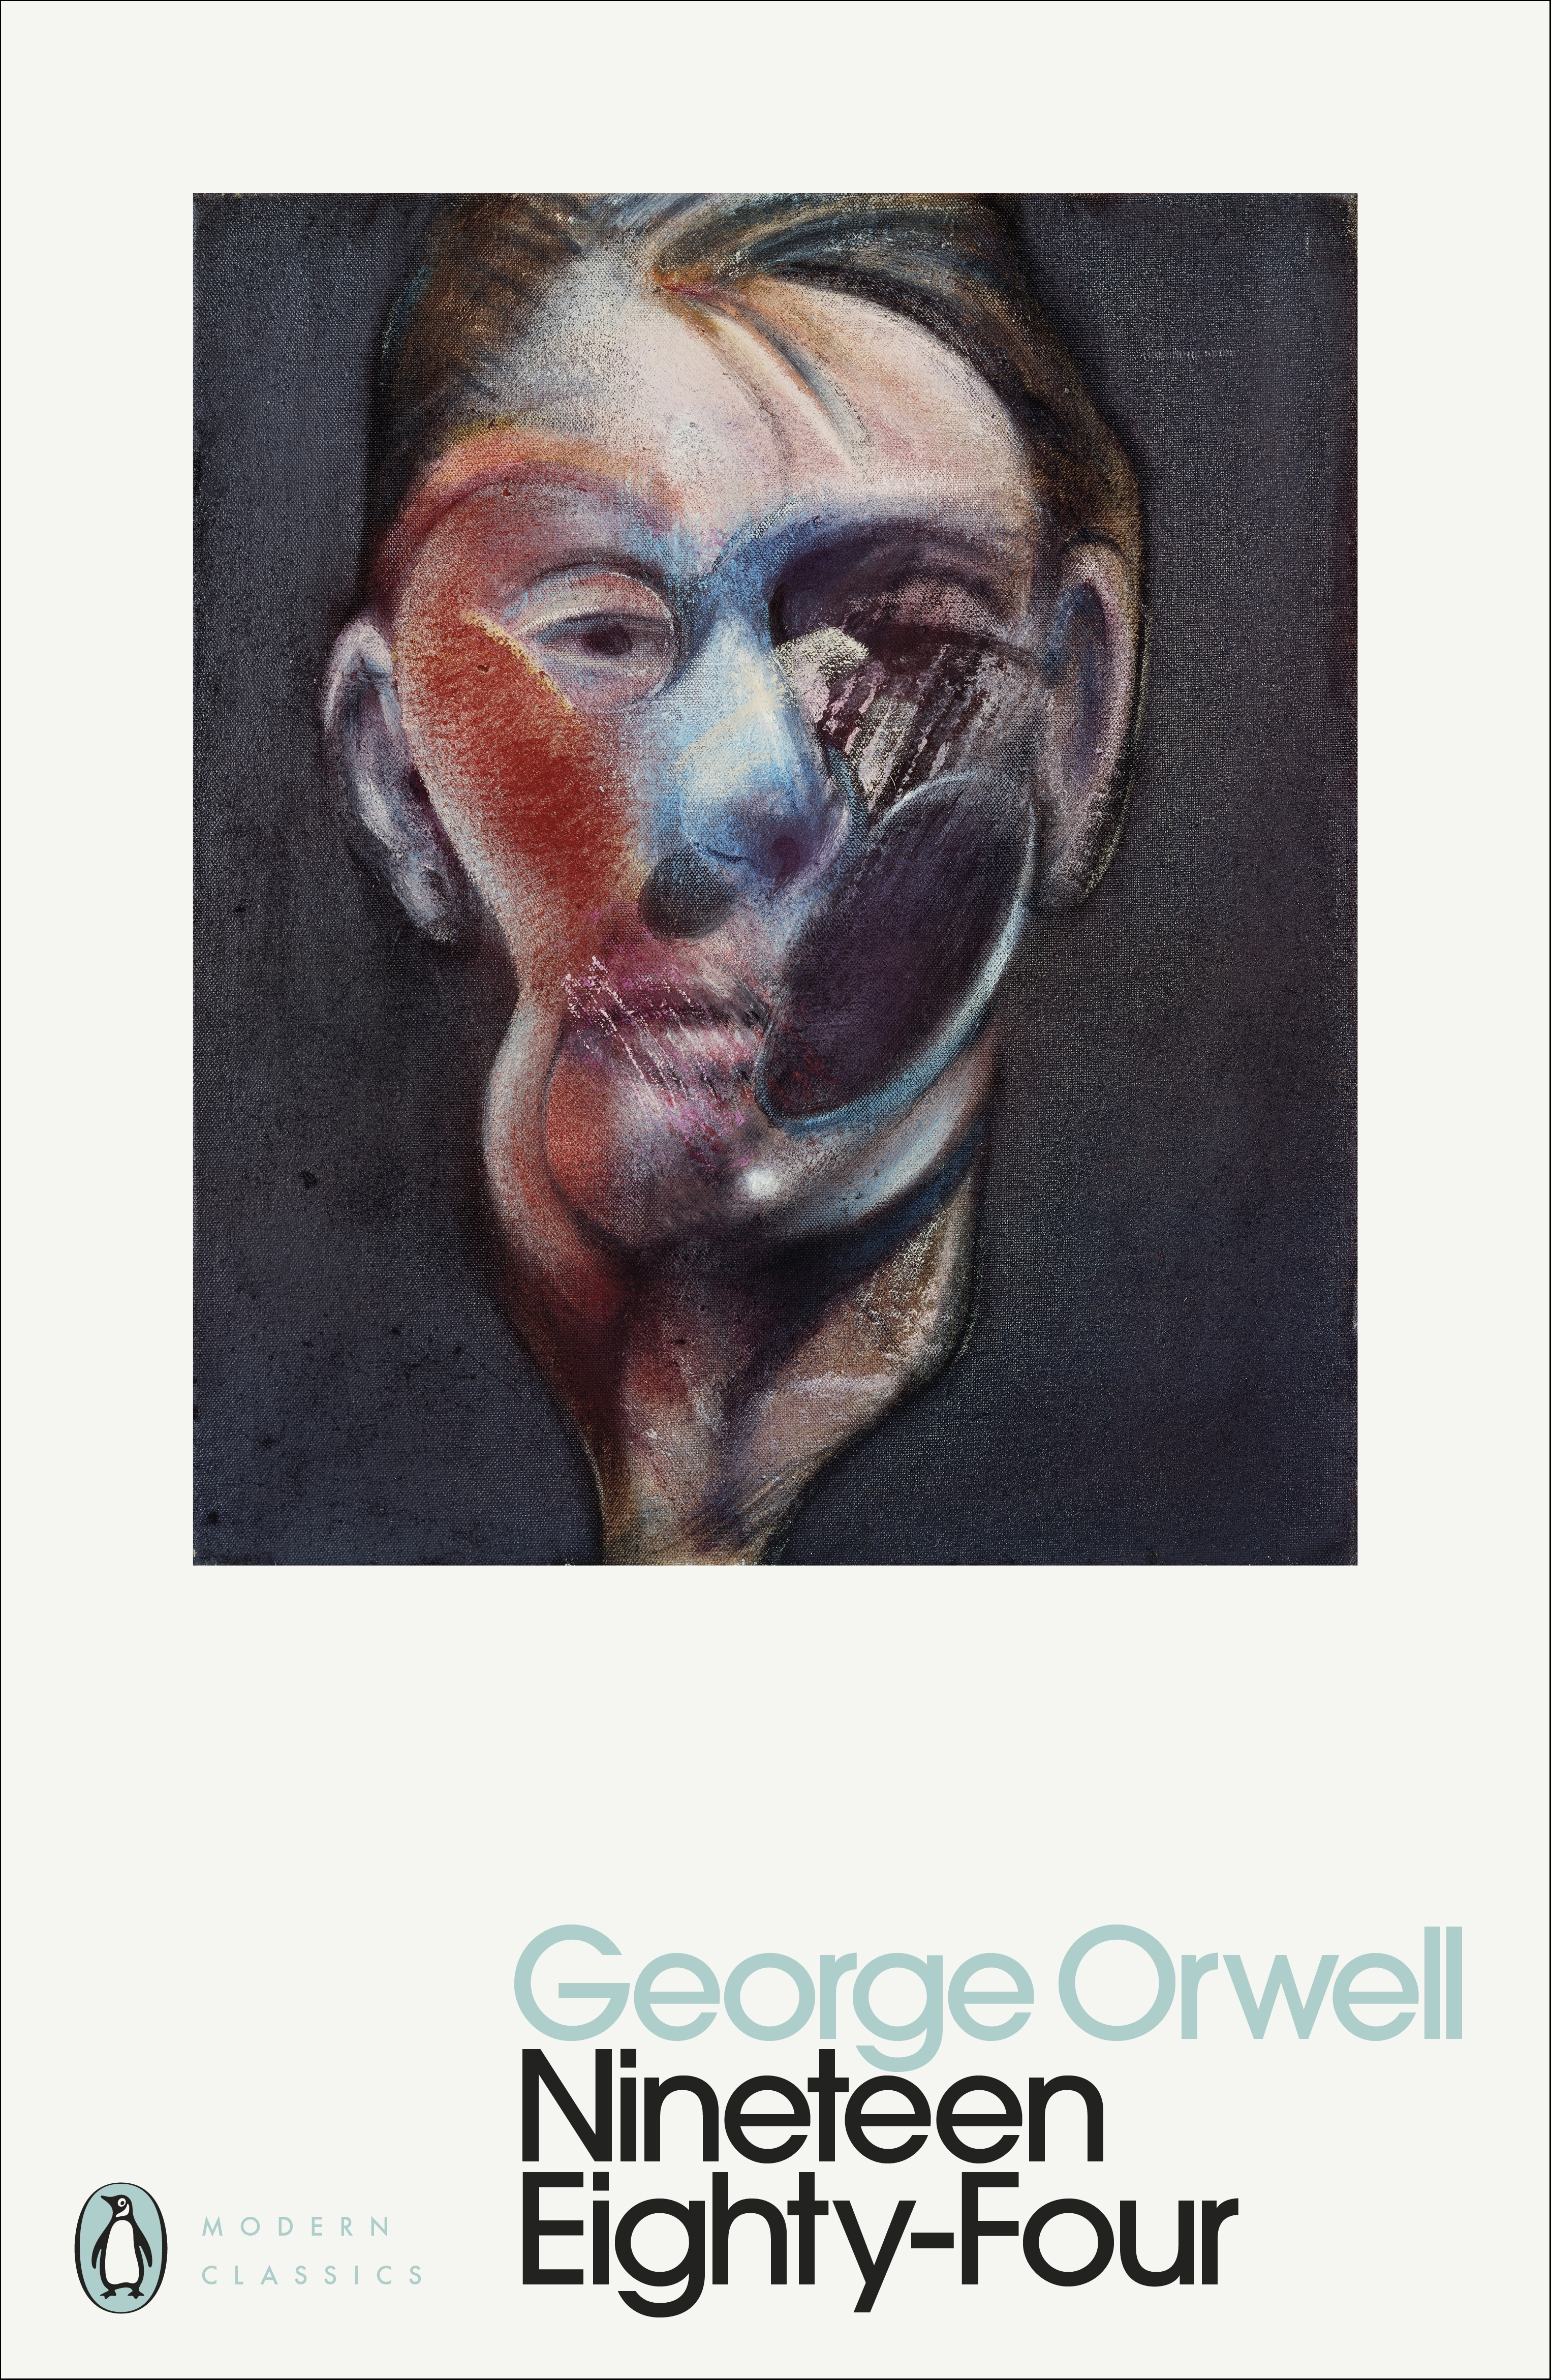 george orwell essays penguin classics Essays (penguin modern classics) by george orwell penguin classics, 2014 paperback used acceptable paperback english language a fair reading copy your book.